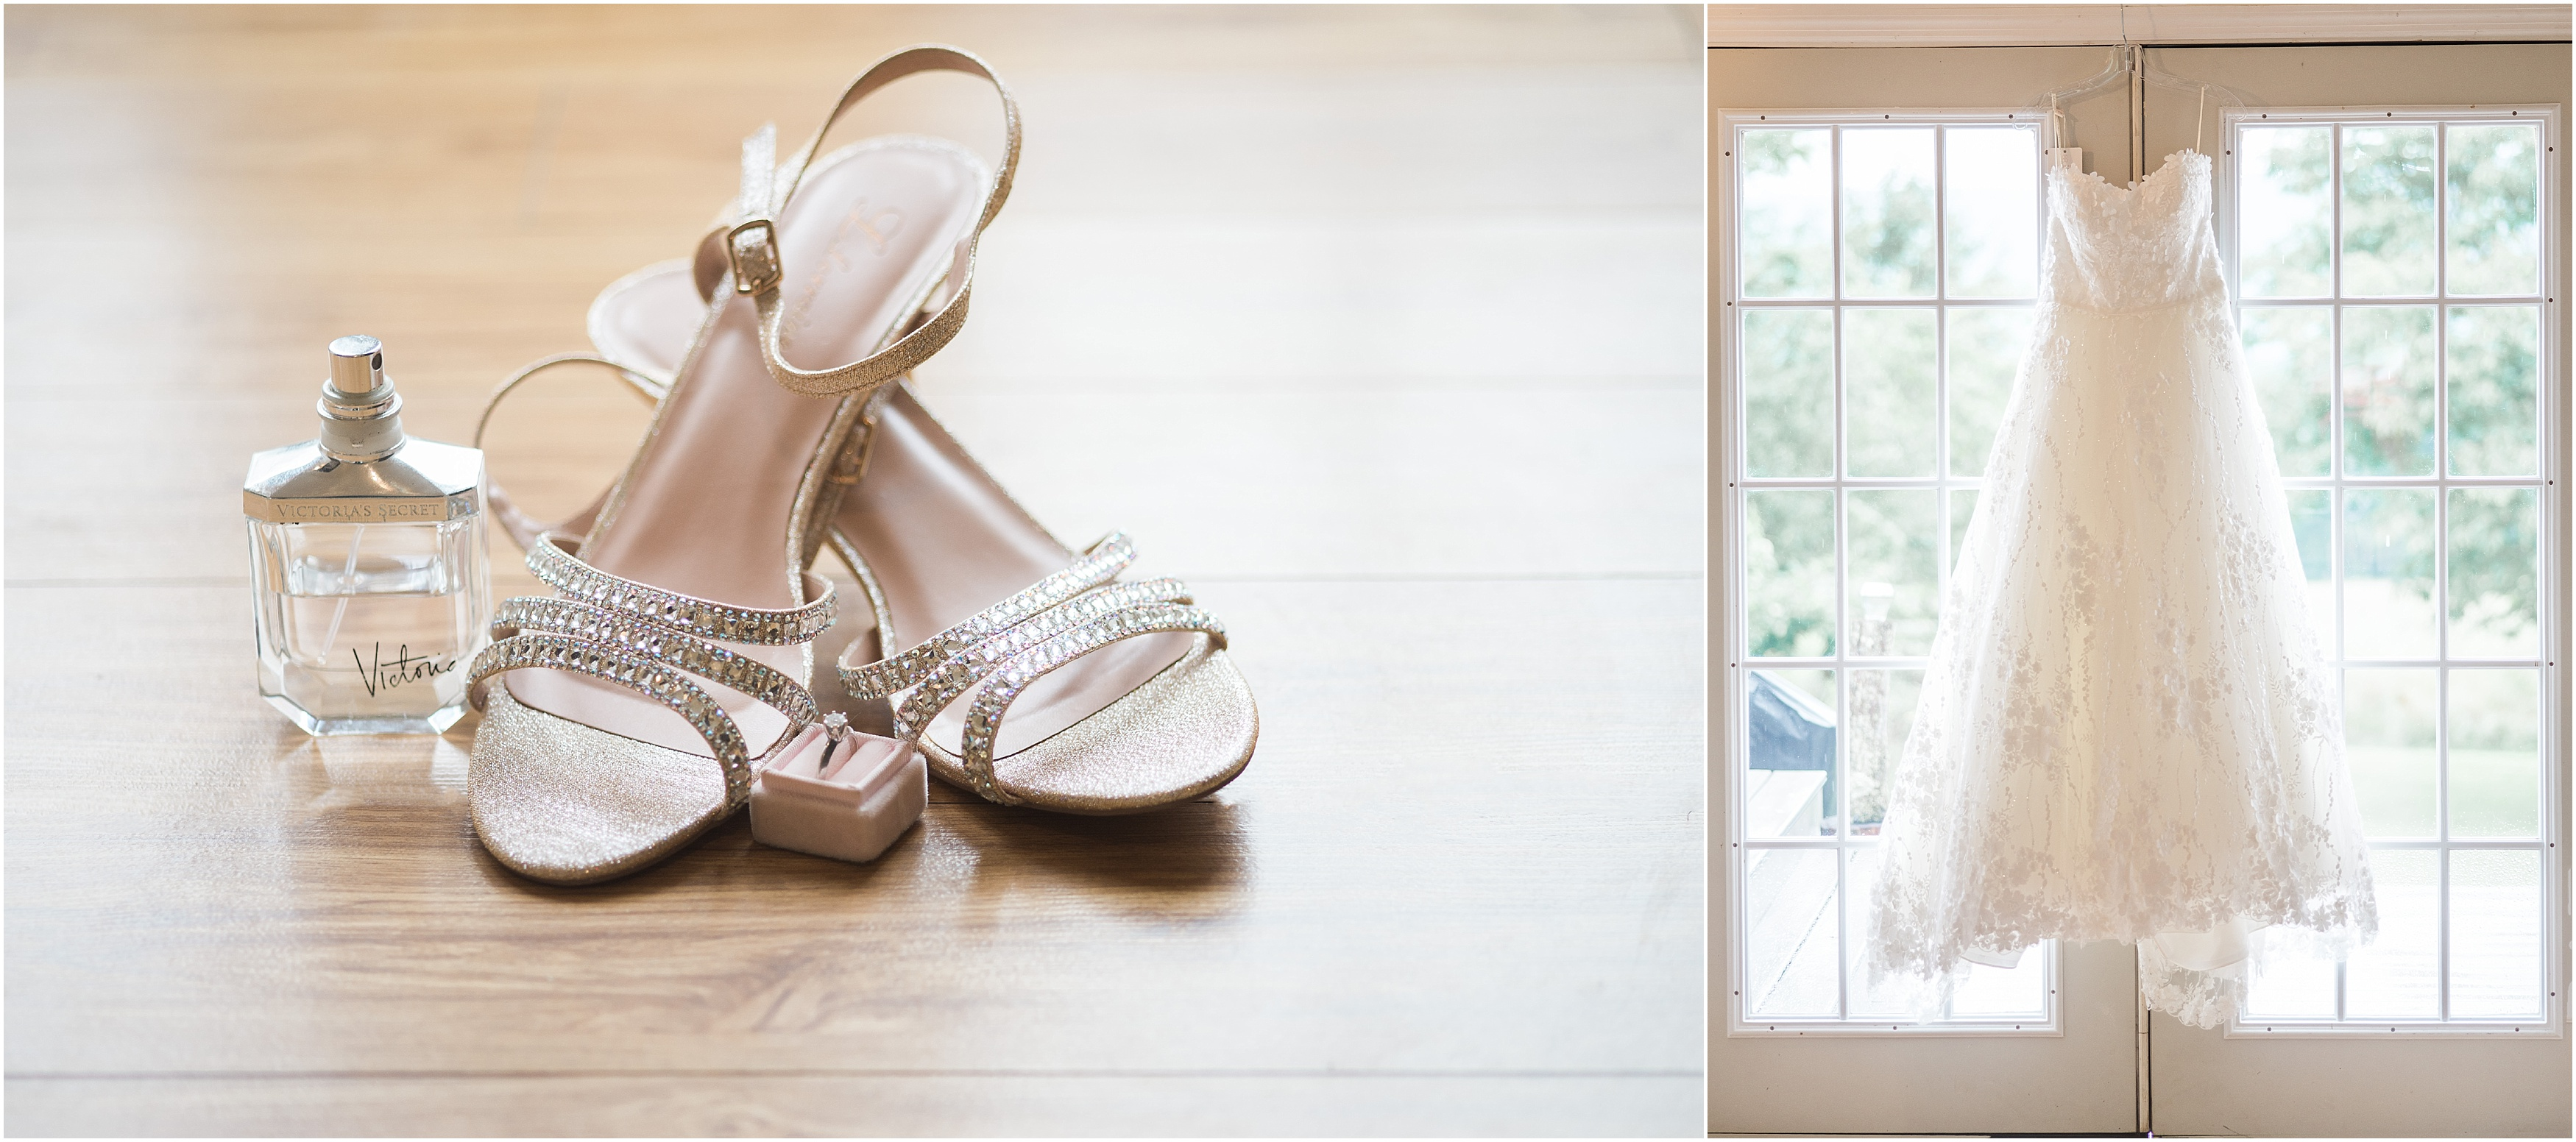 NEPA Wedding and Destination Photographer Tasha Puckey Photography